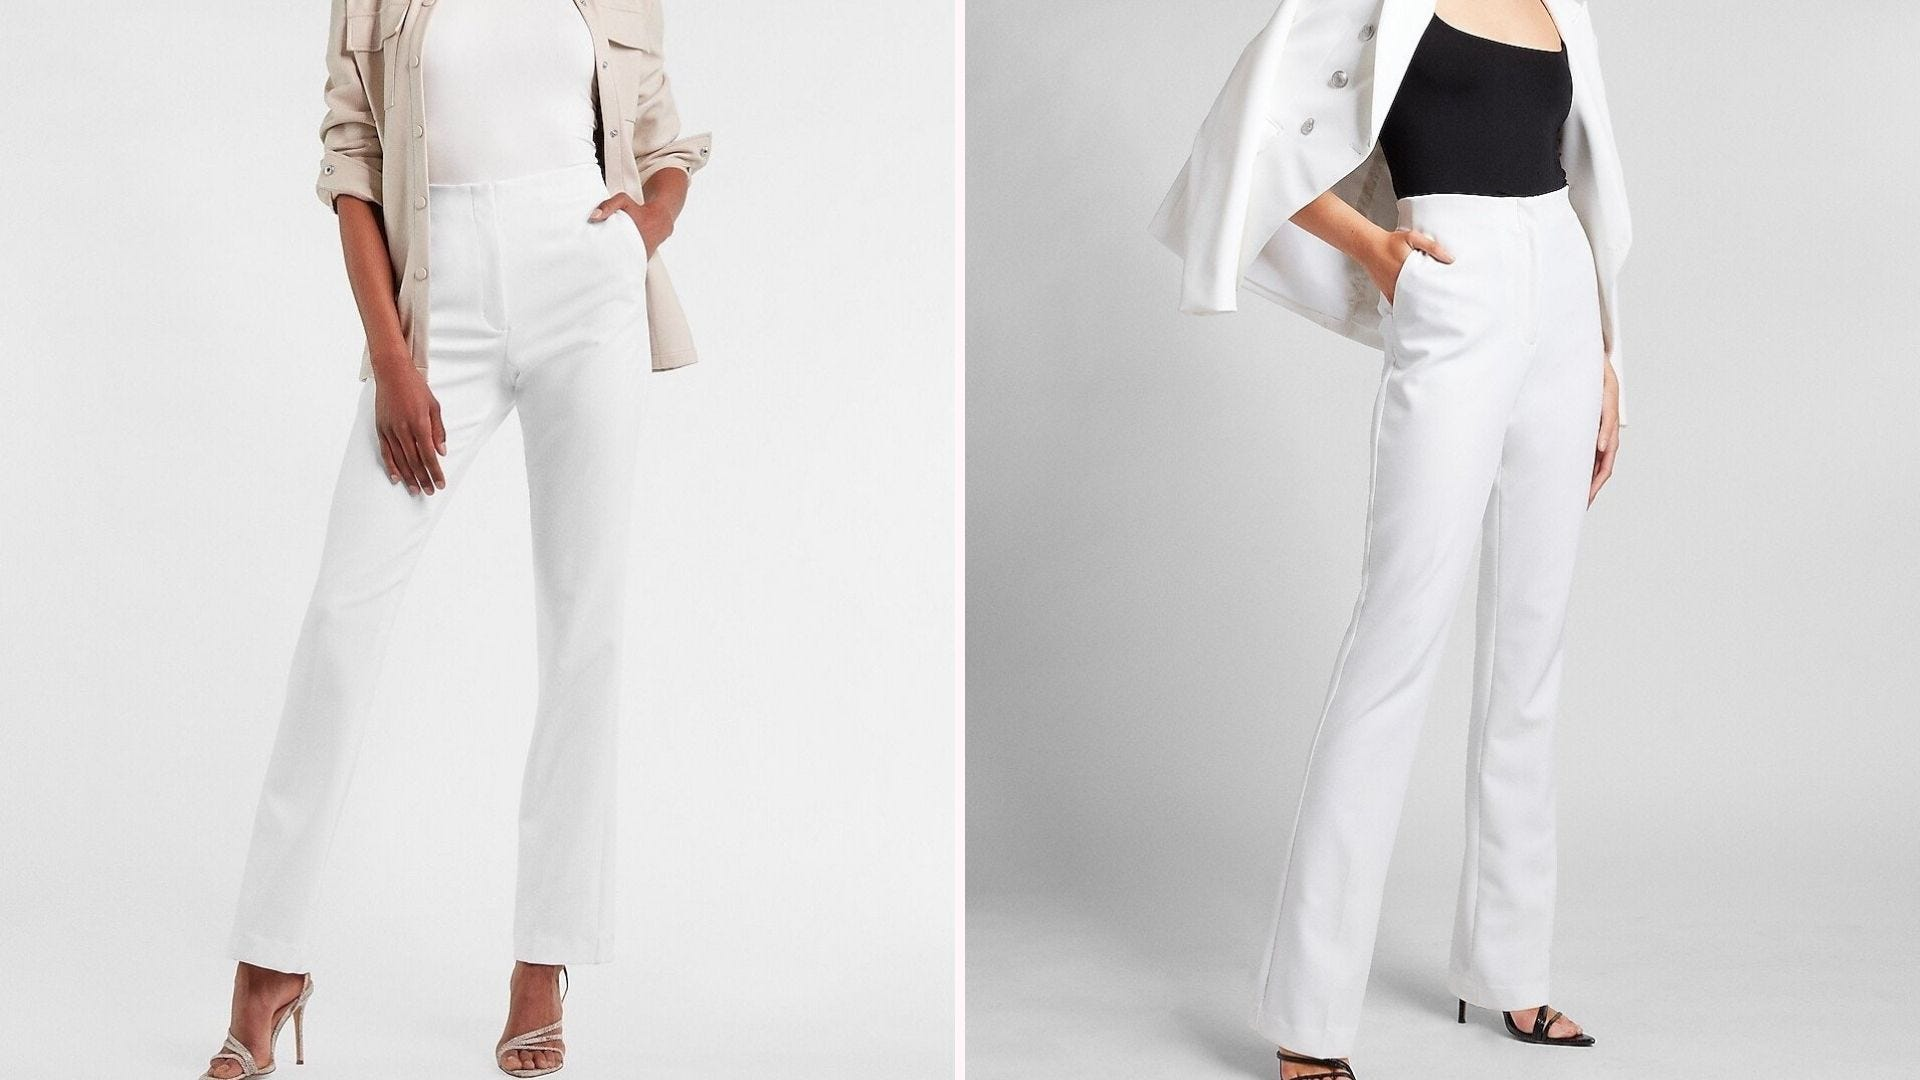 Shoulder-down pictures of two women wearing white pants with different colored tops and jackets